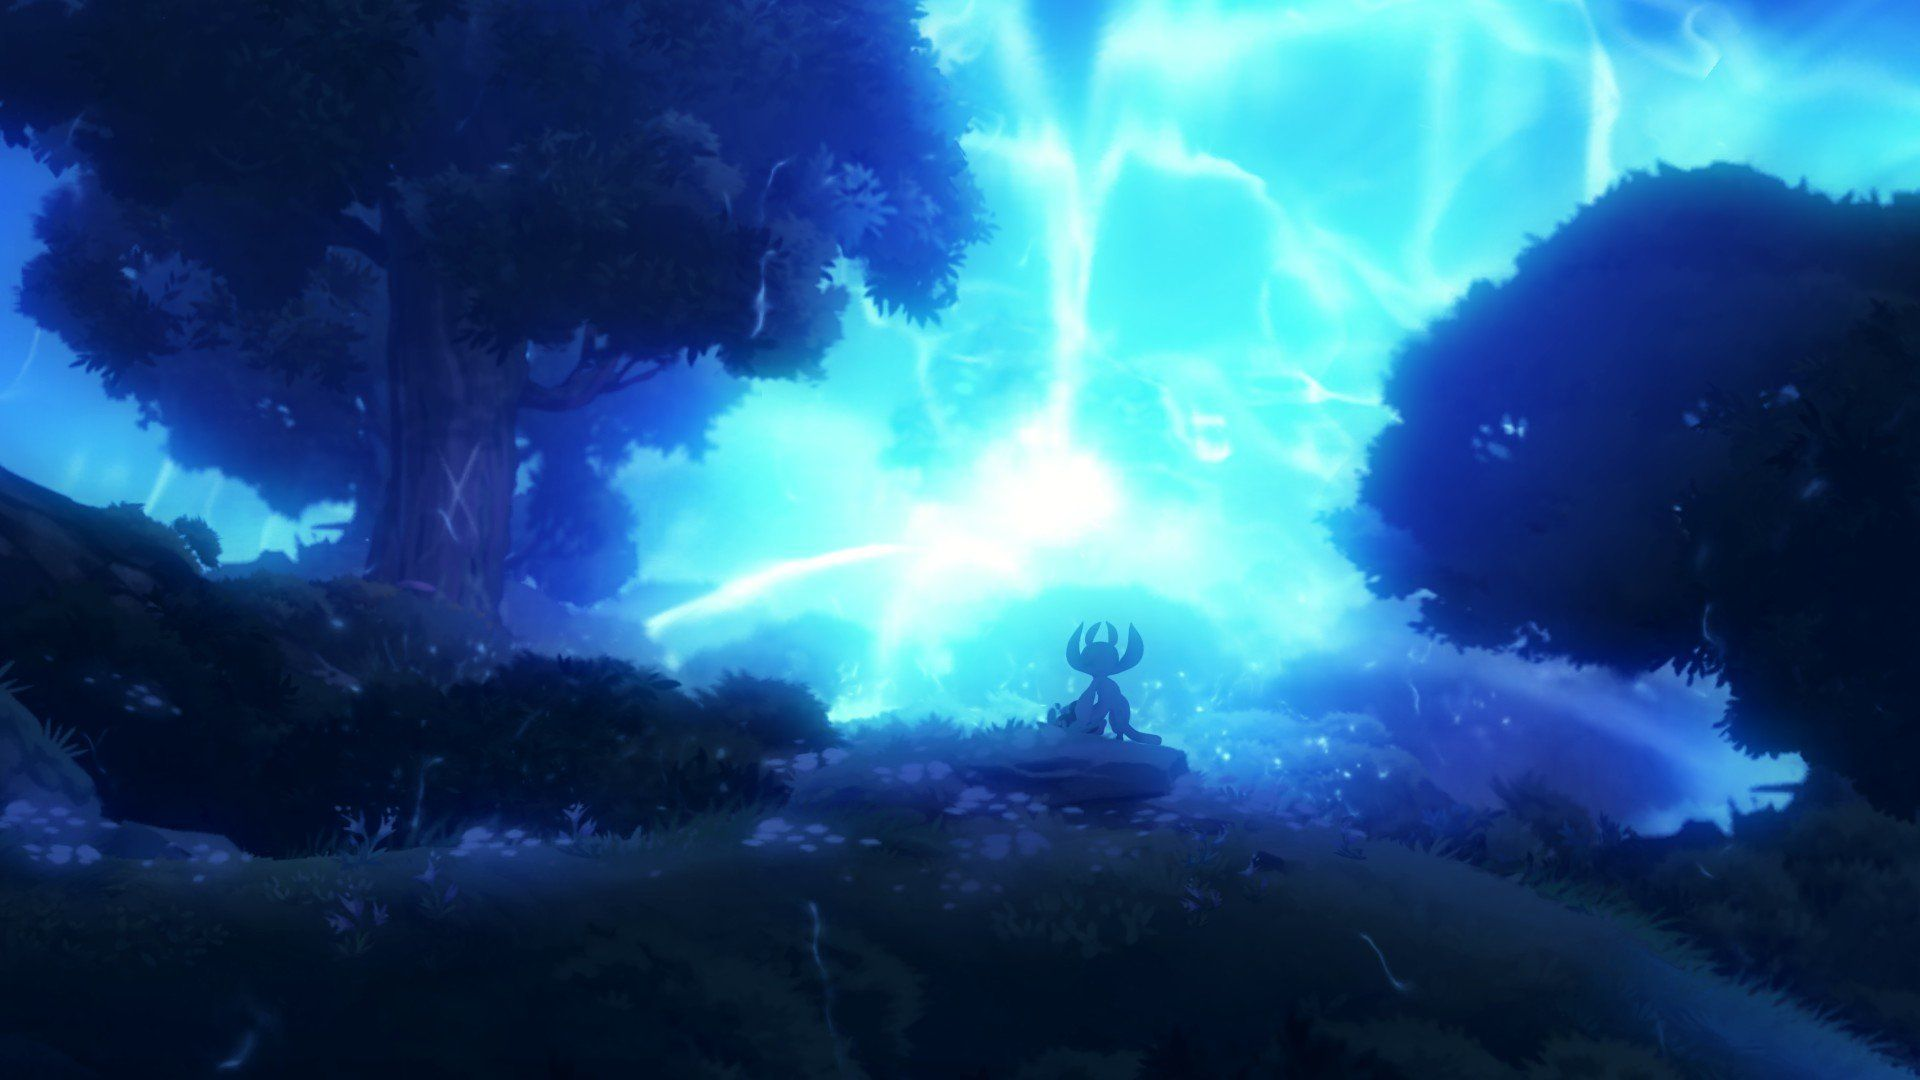 Ori And The Blind Forest Game Art Johannes Figlhuber Fantasy Art Landscapes Game Background Art Art